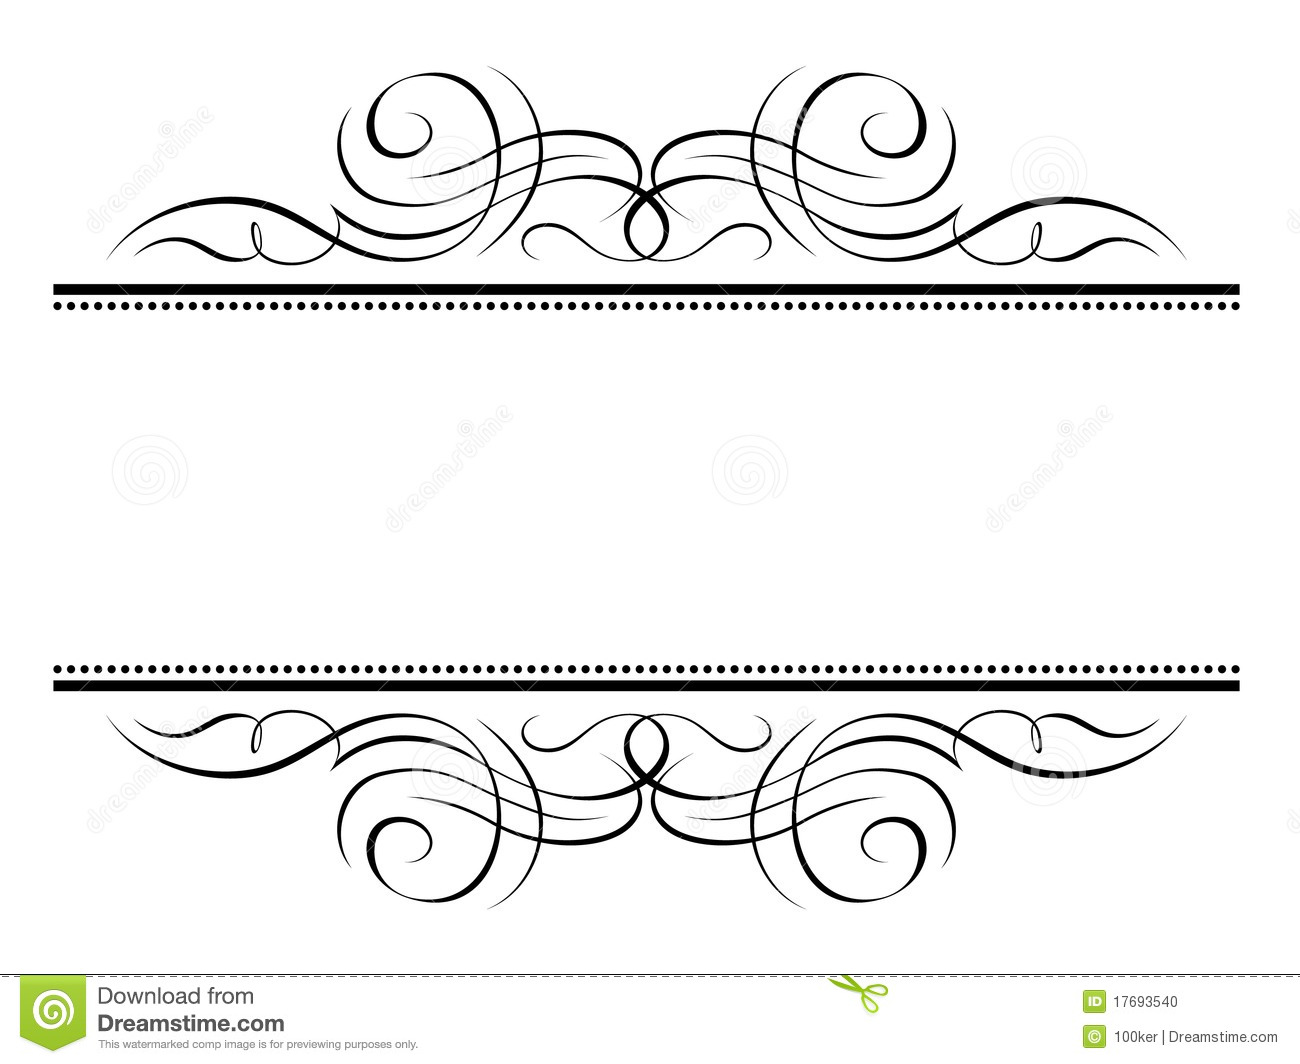 Simple Swirl Border Vignette penmanship decorative